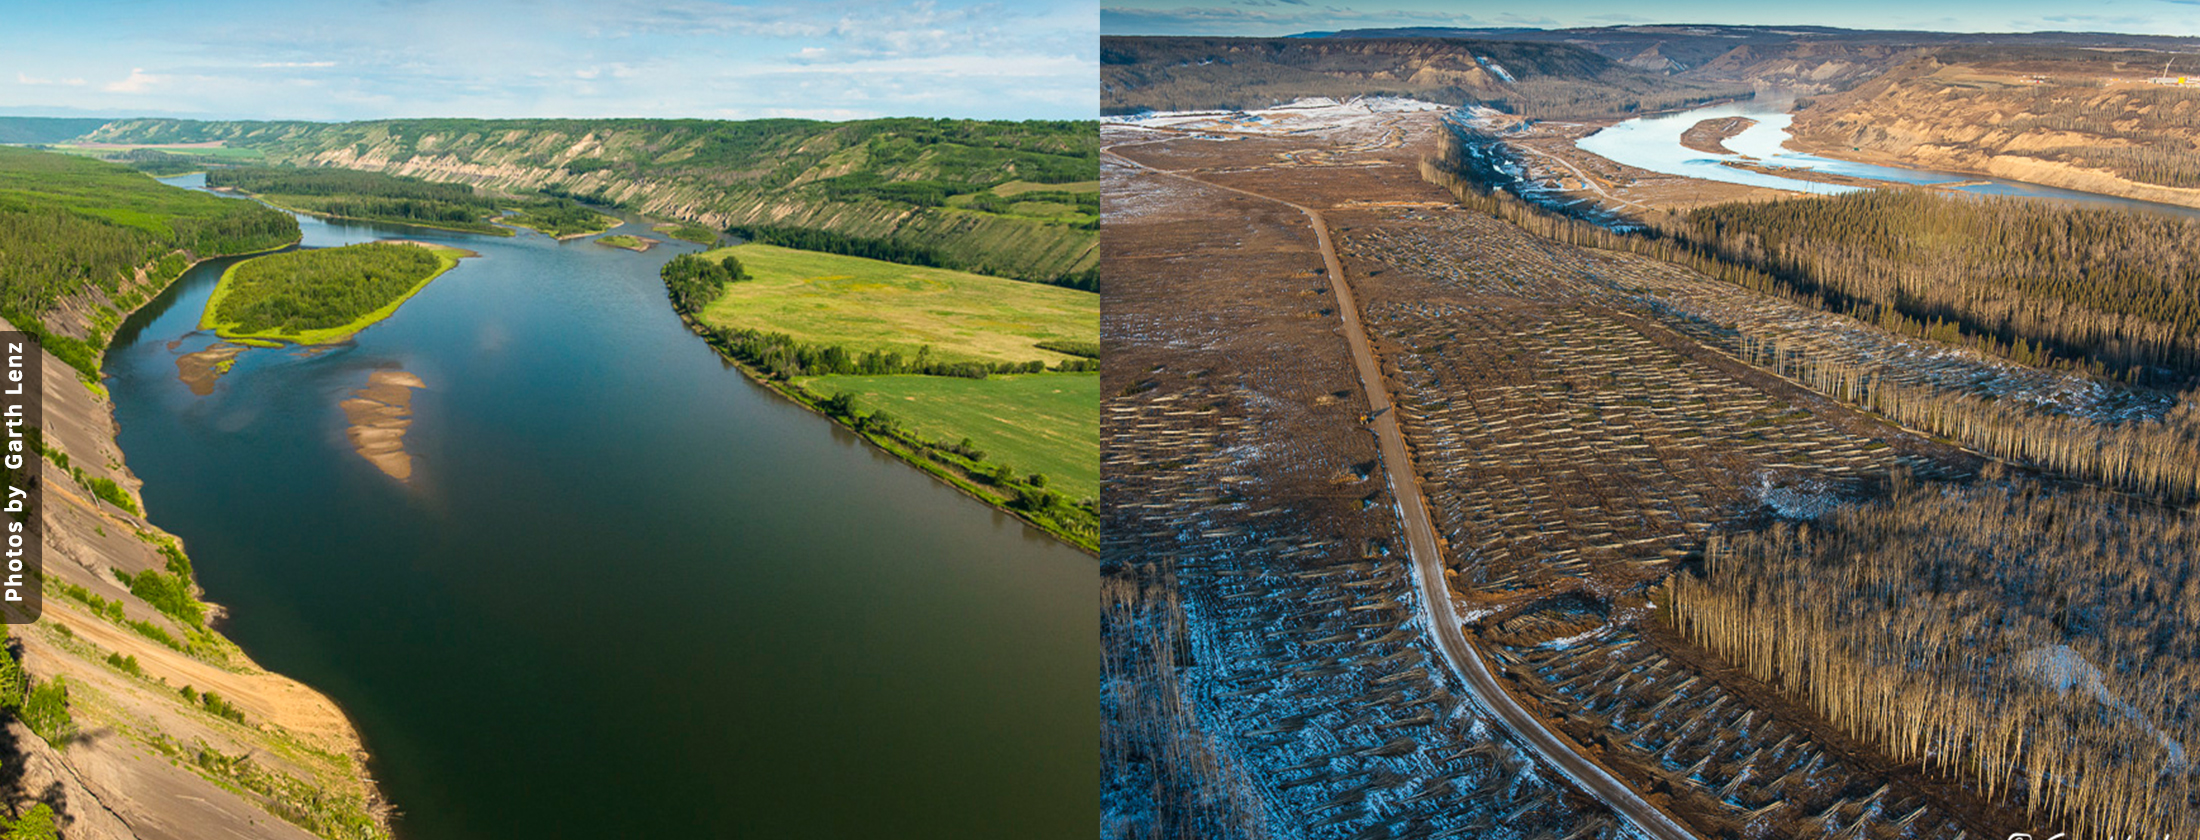 Site C before and after clearcutting. Photo by Garth Lenz